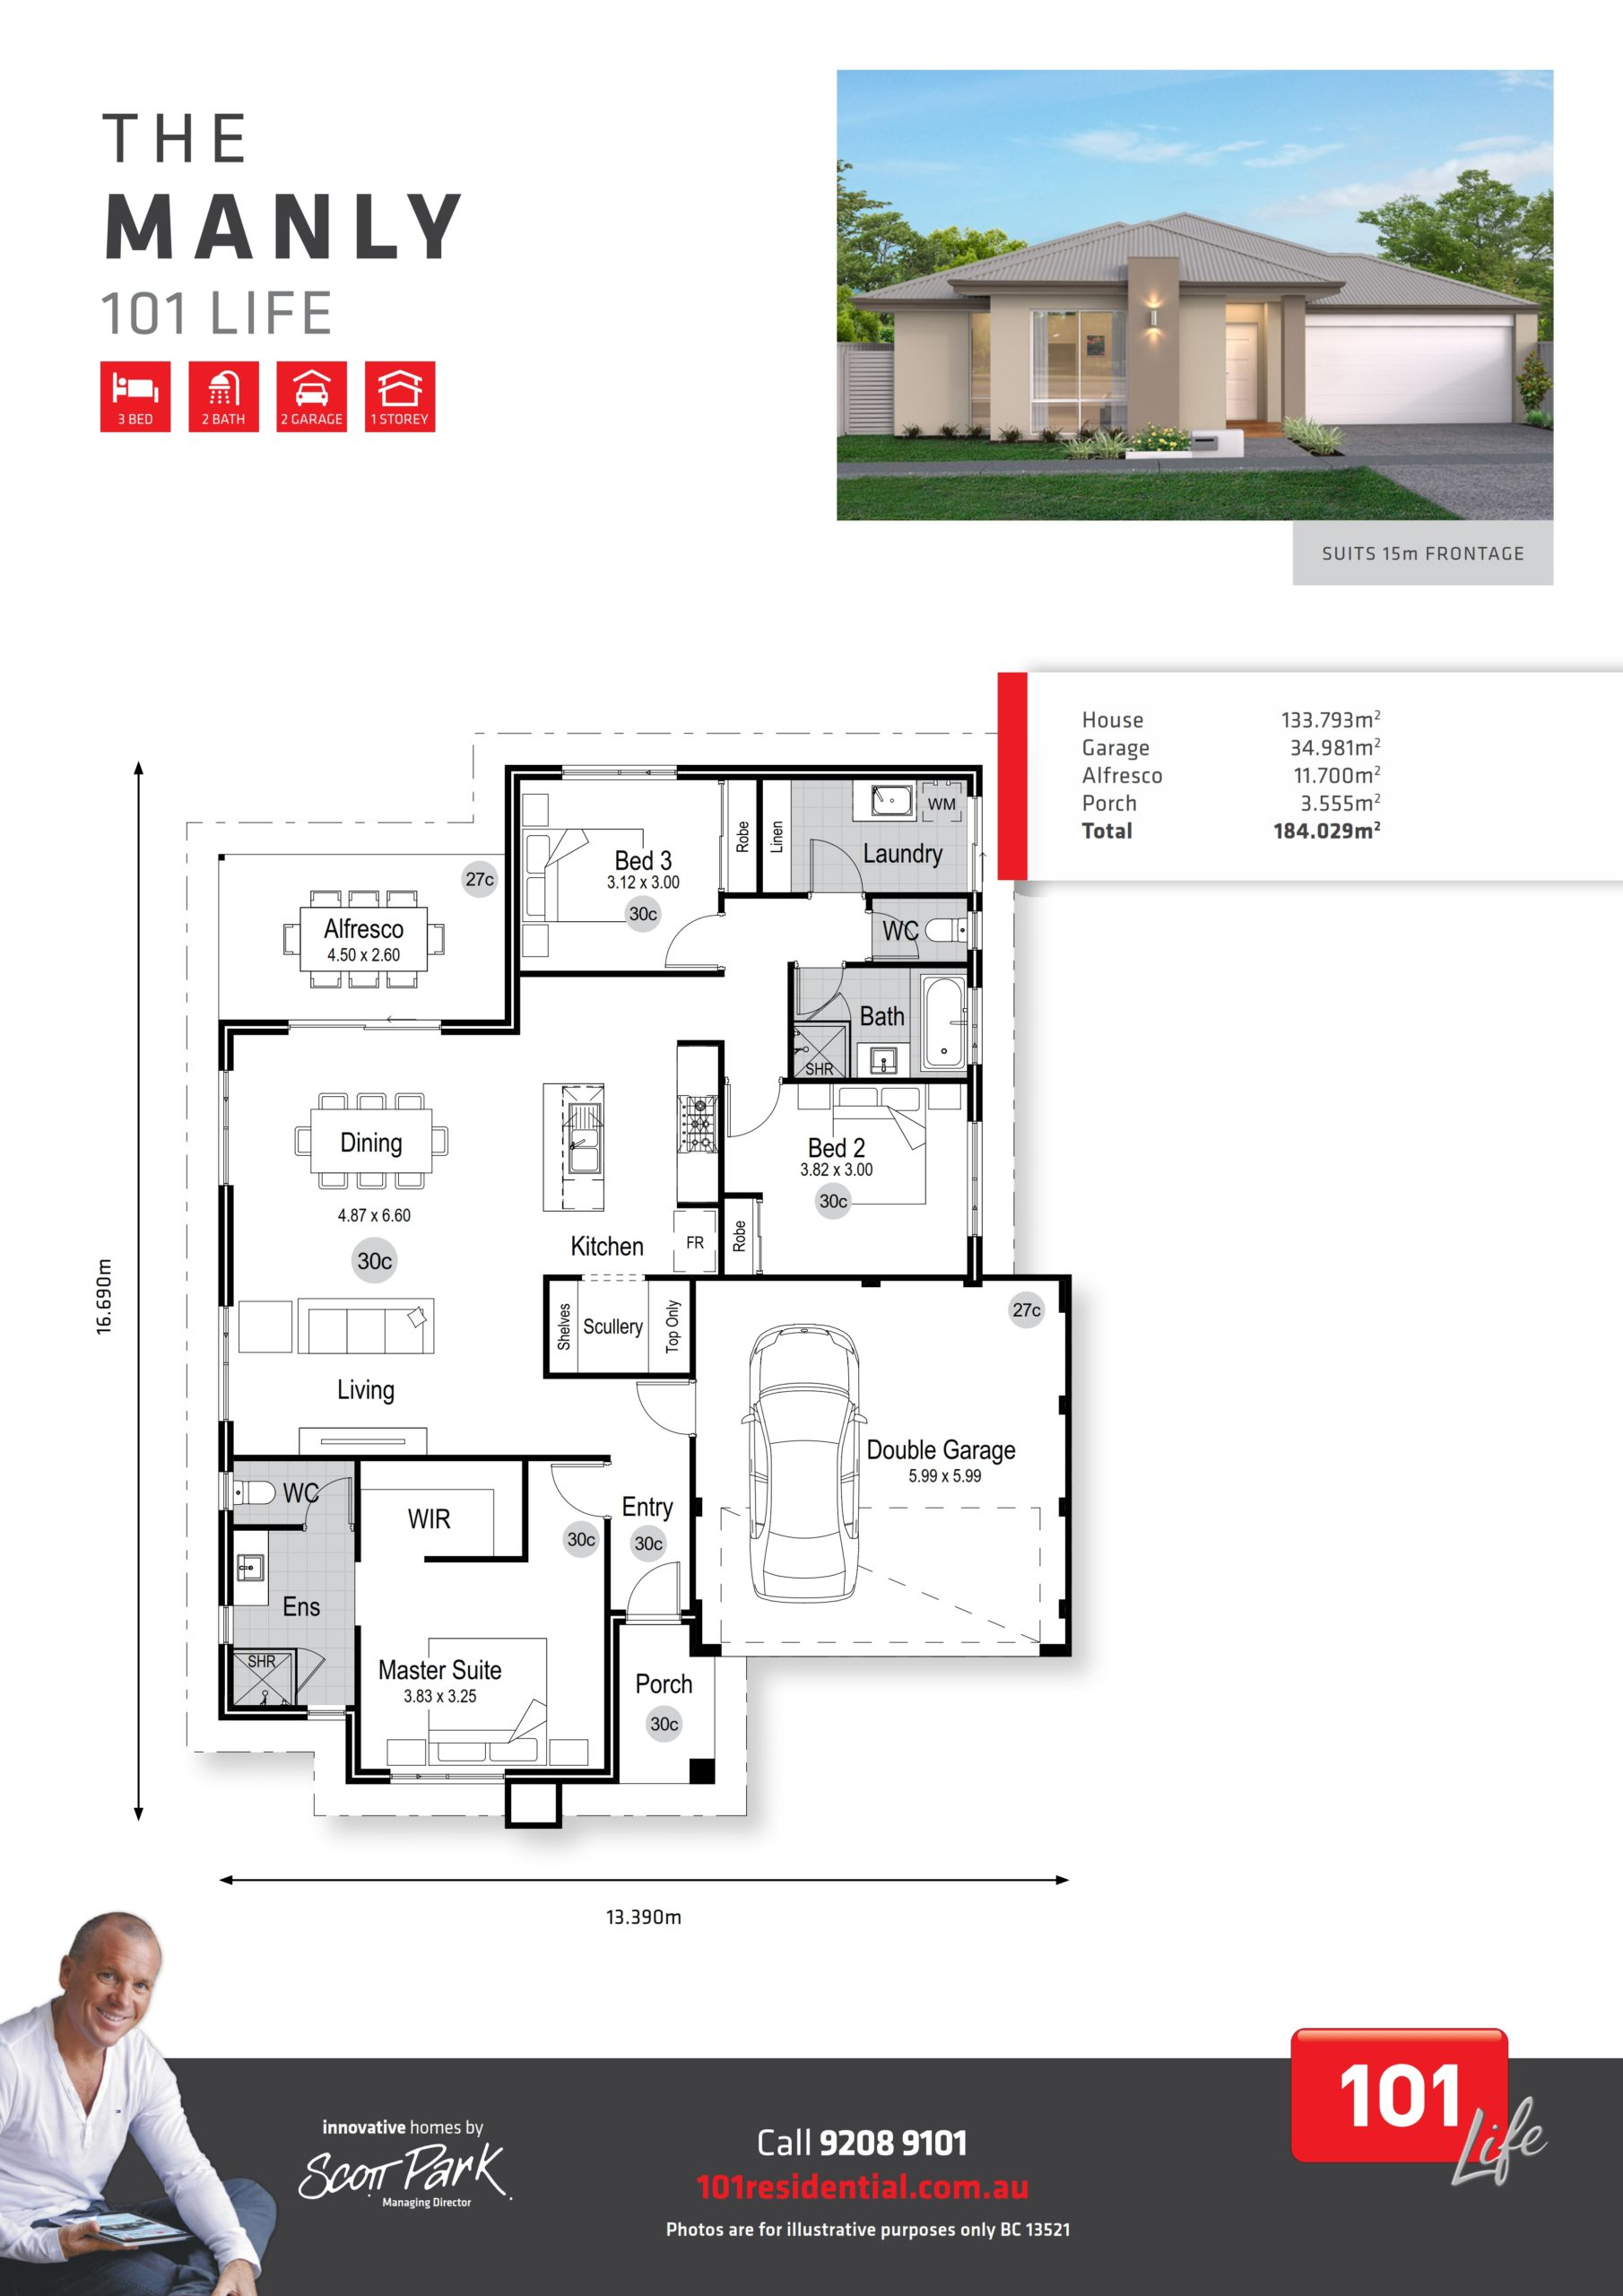 101 Life A3 Floor Plan - Manly WEB_001